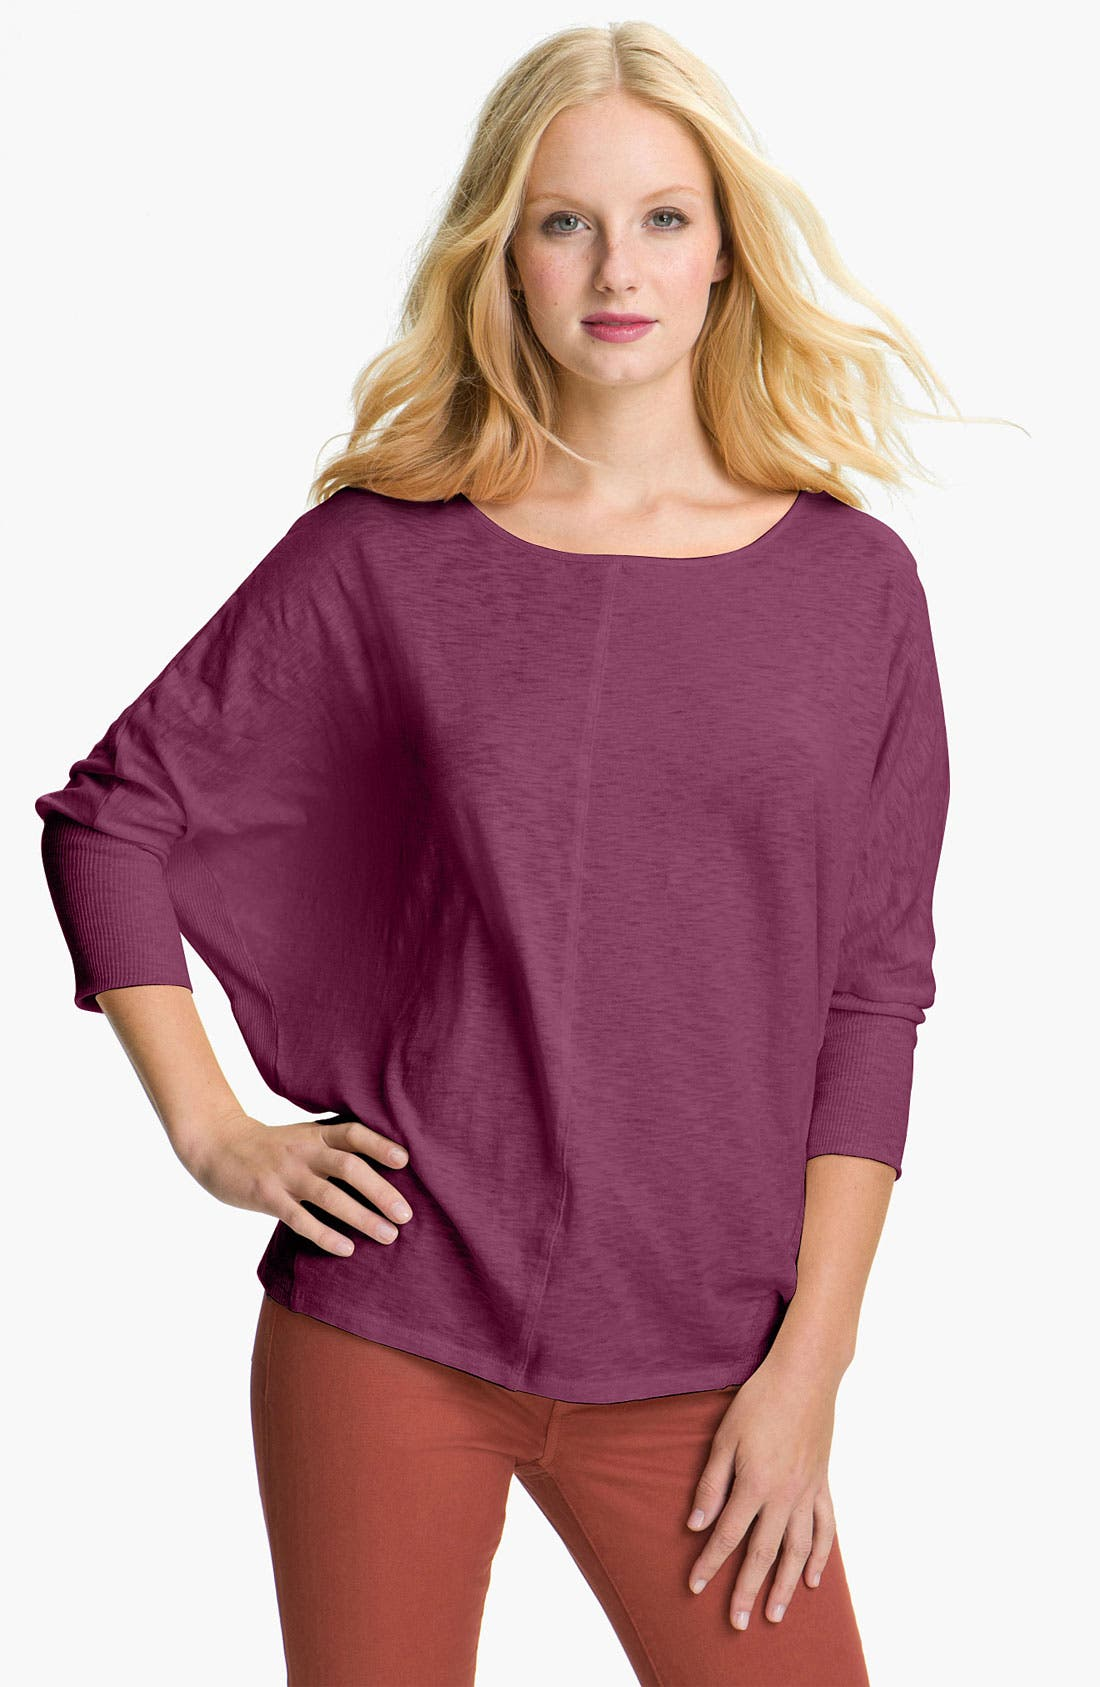 Alternate Image 1 Selected - Two by Vince Camuto Dolman Sleeve Top